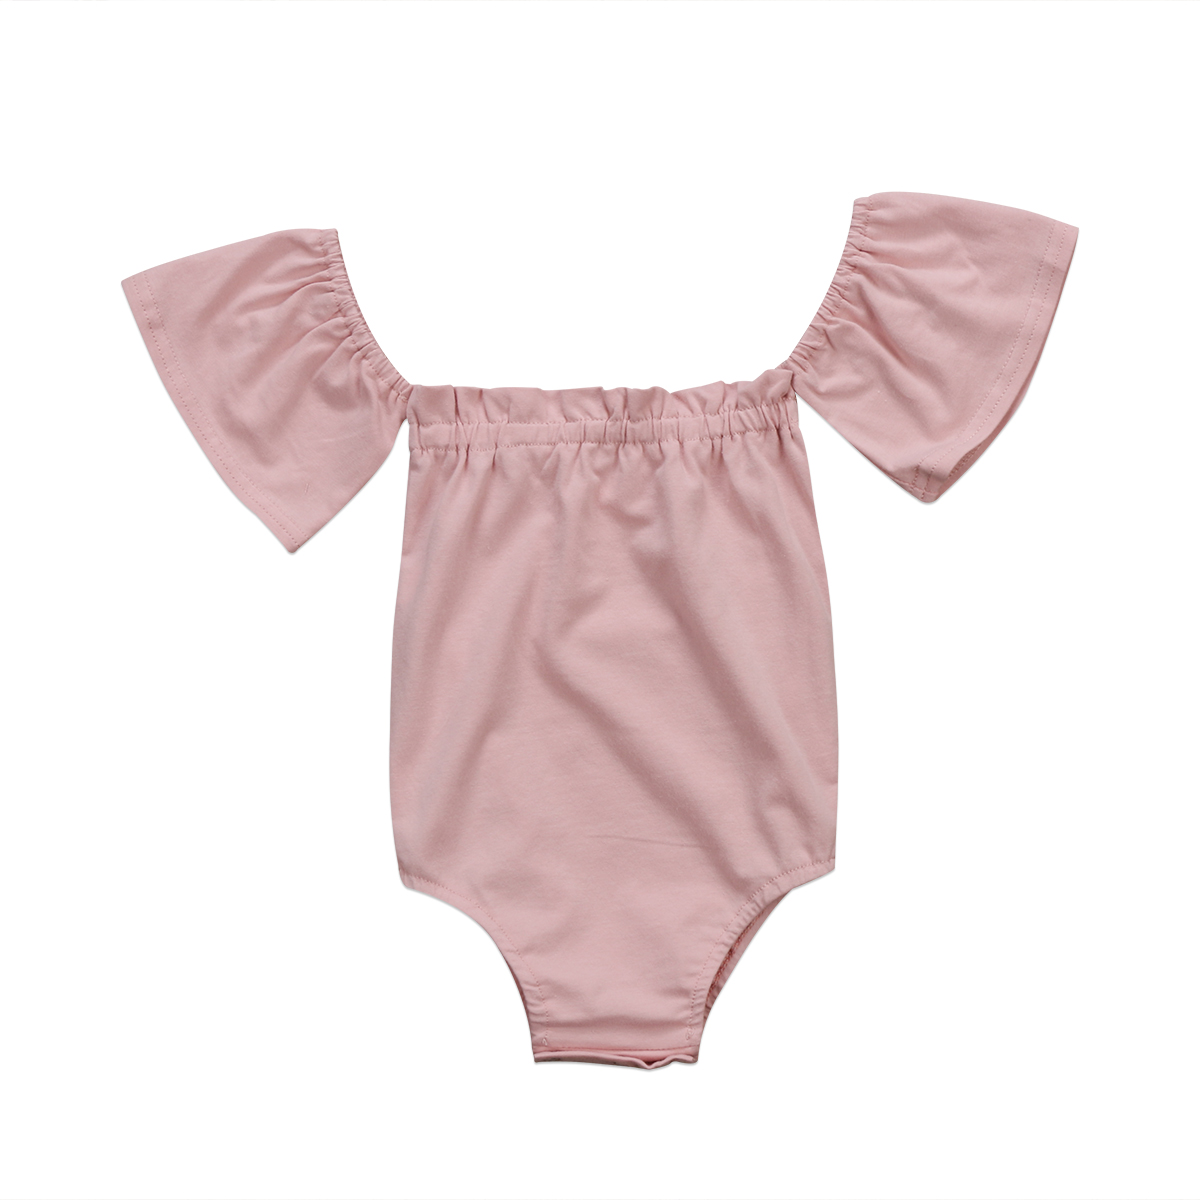 Baby Clothing Newborn Infant Baby Girl Pink Romper Off ...